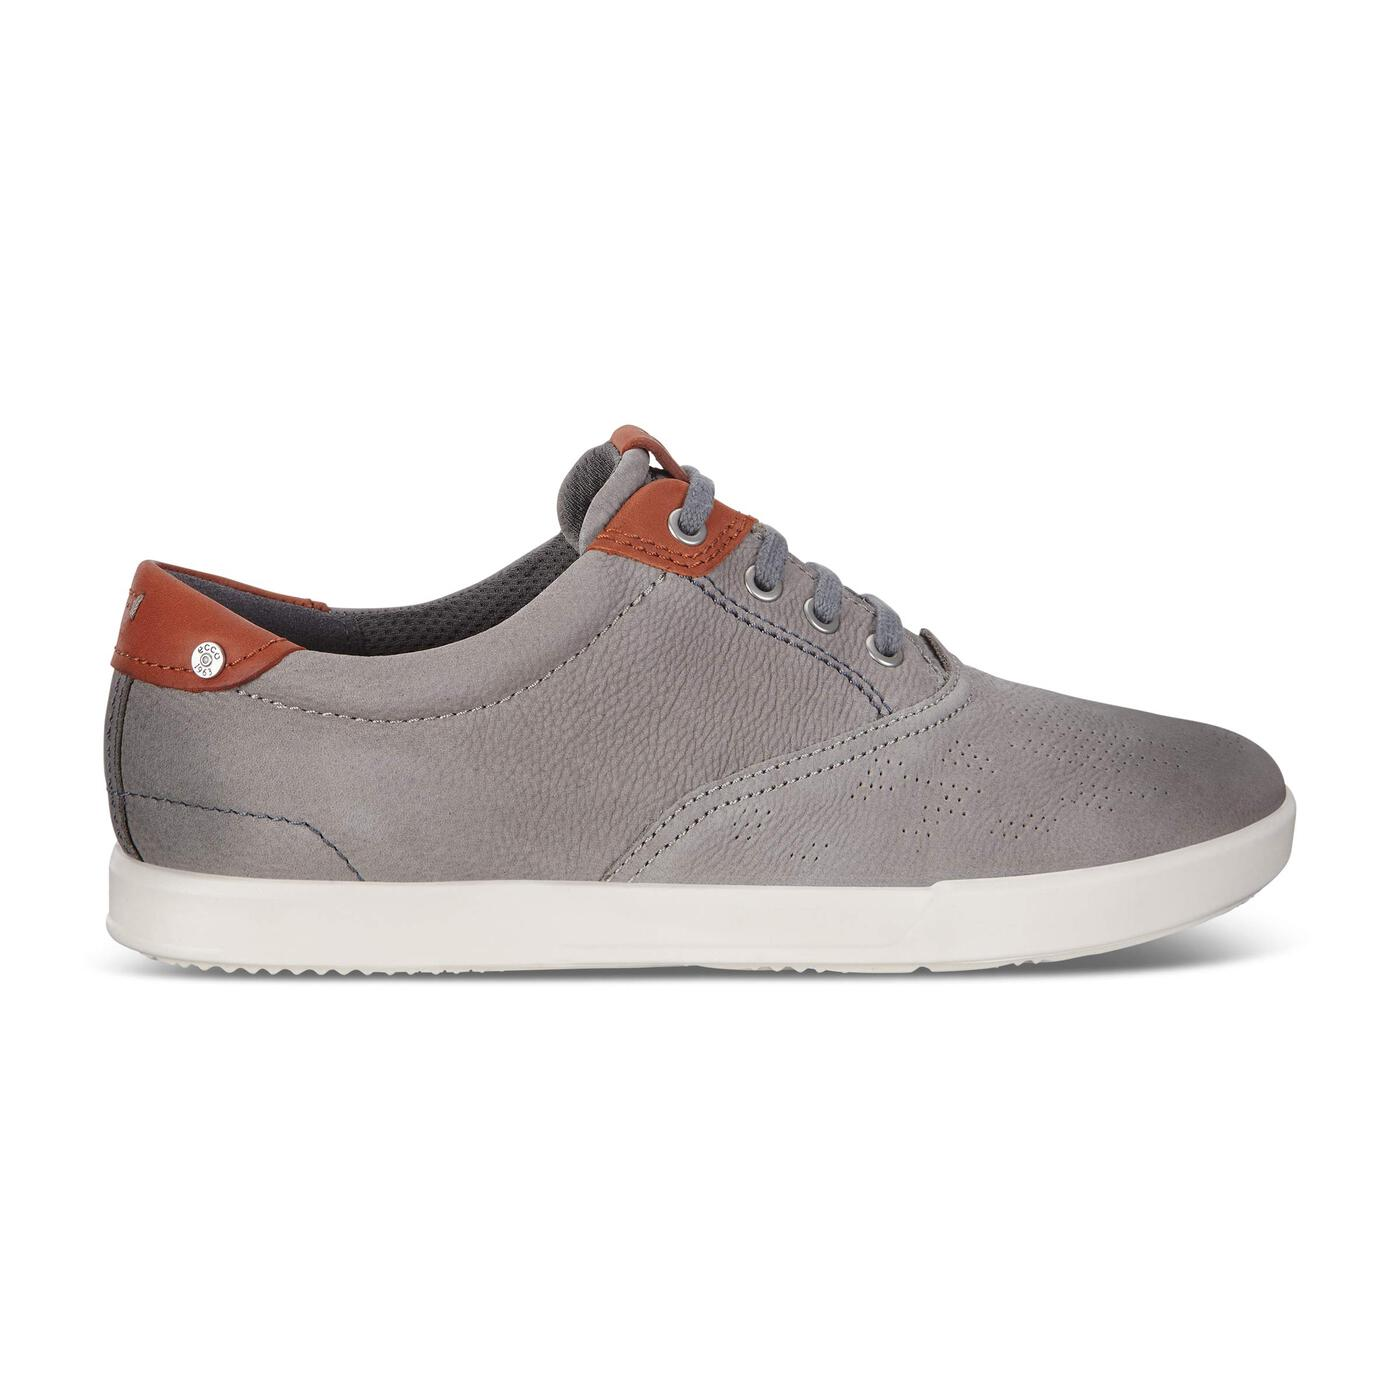 ECCO Collin 2.0 Men's Lace-Up Sneakers